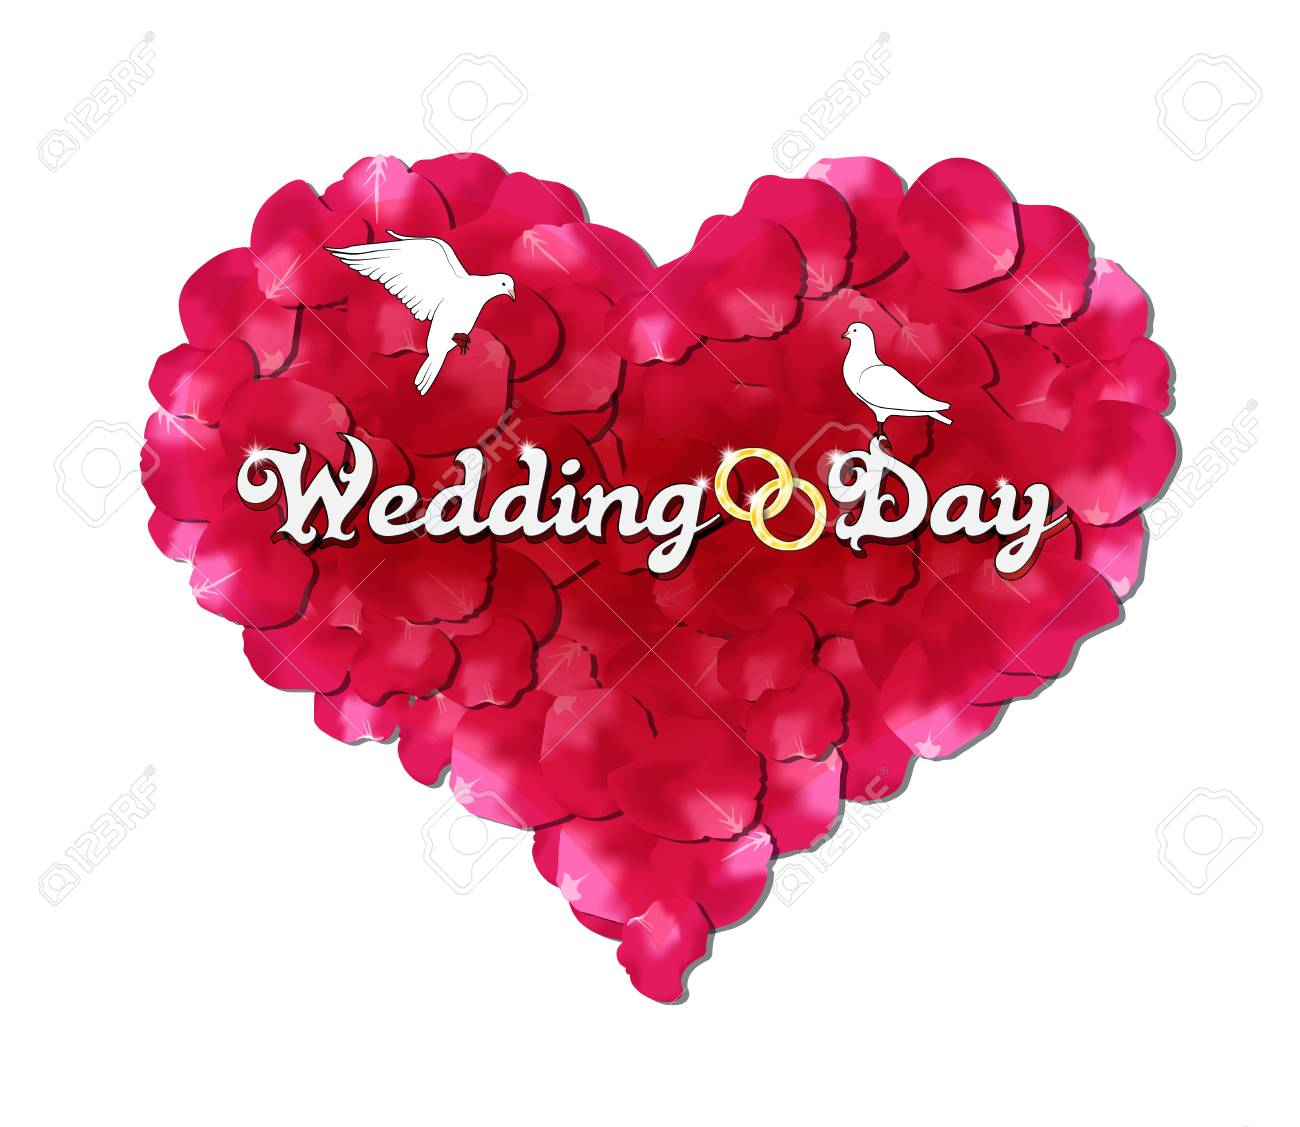 Wedding Day, The Heart Of Rose Petals, Doves And Rings Royalty Free ...